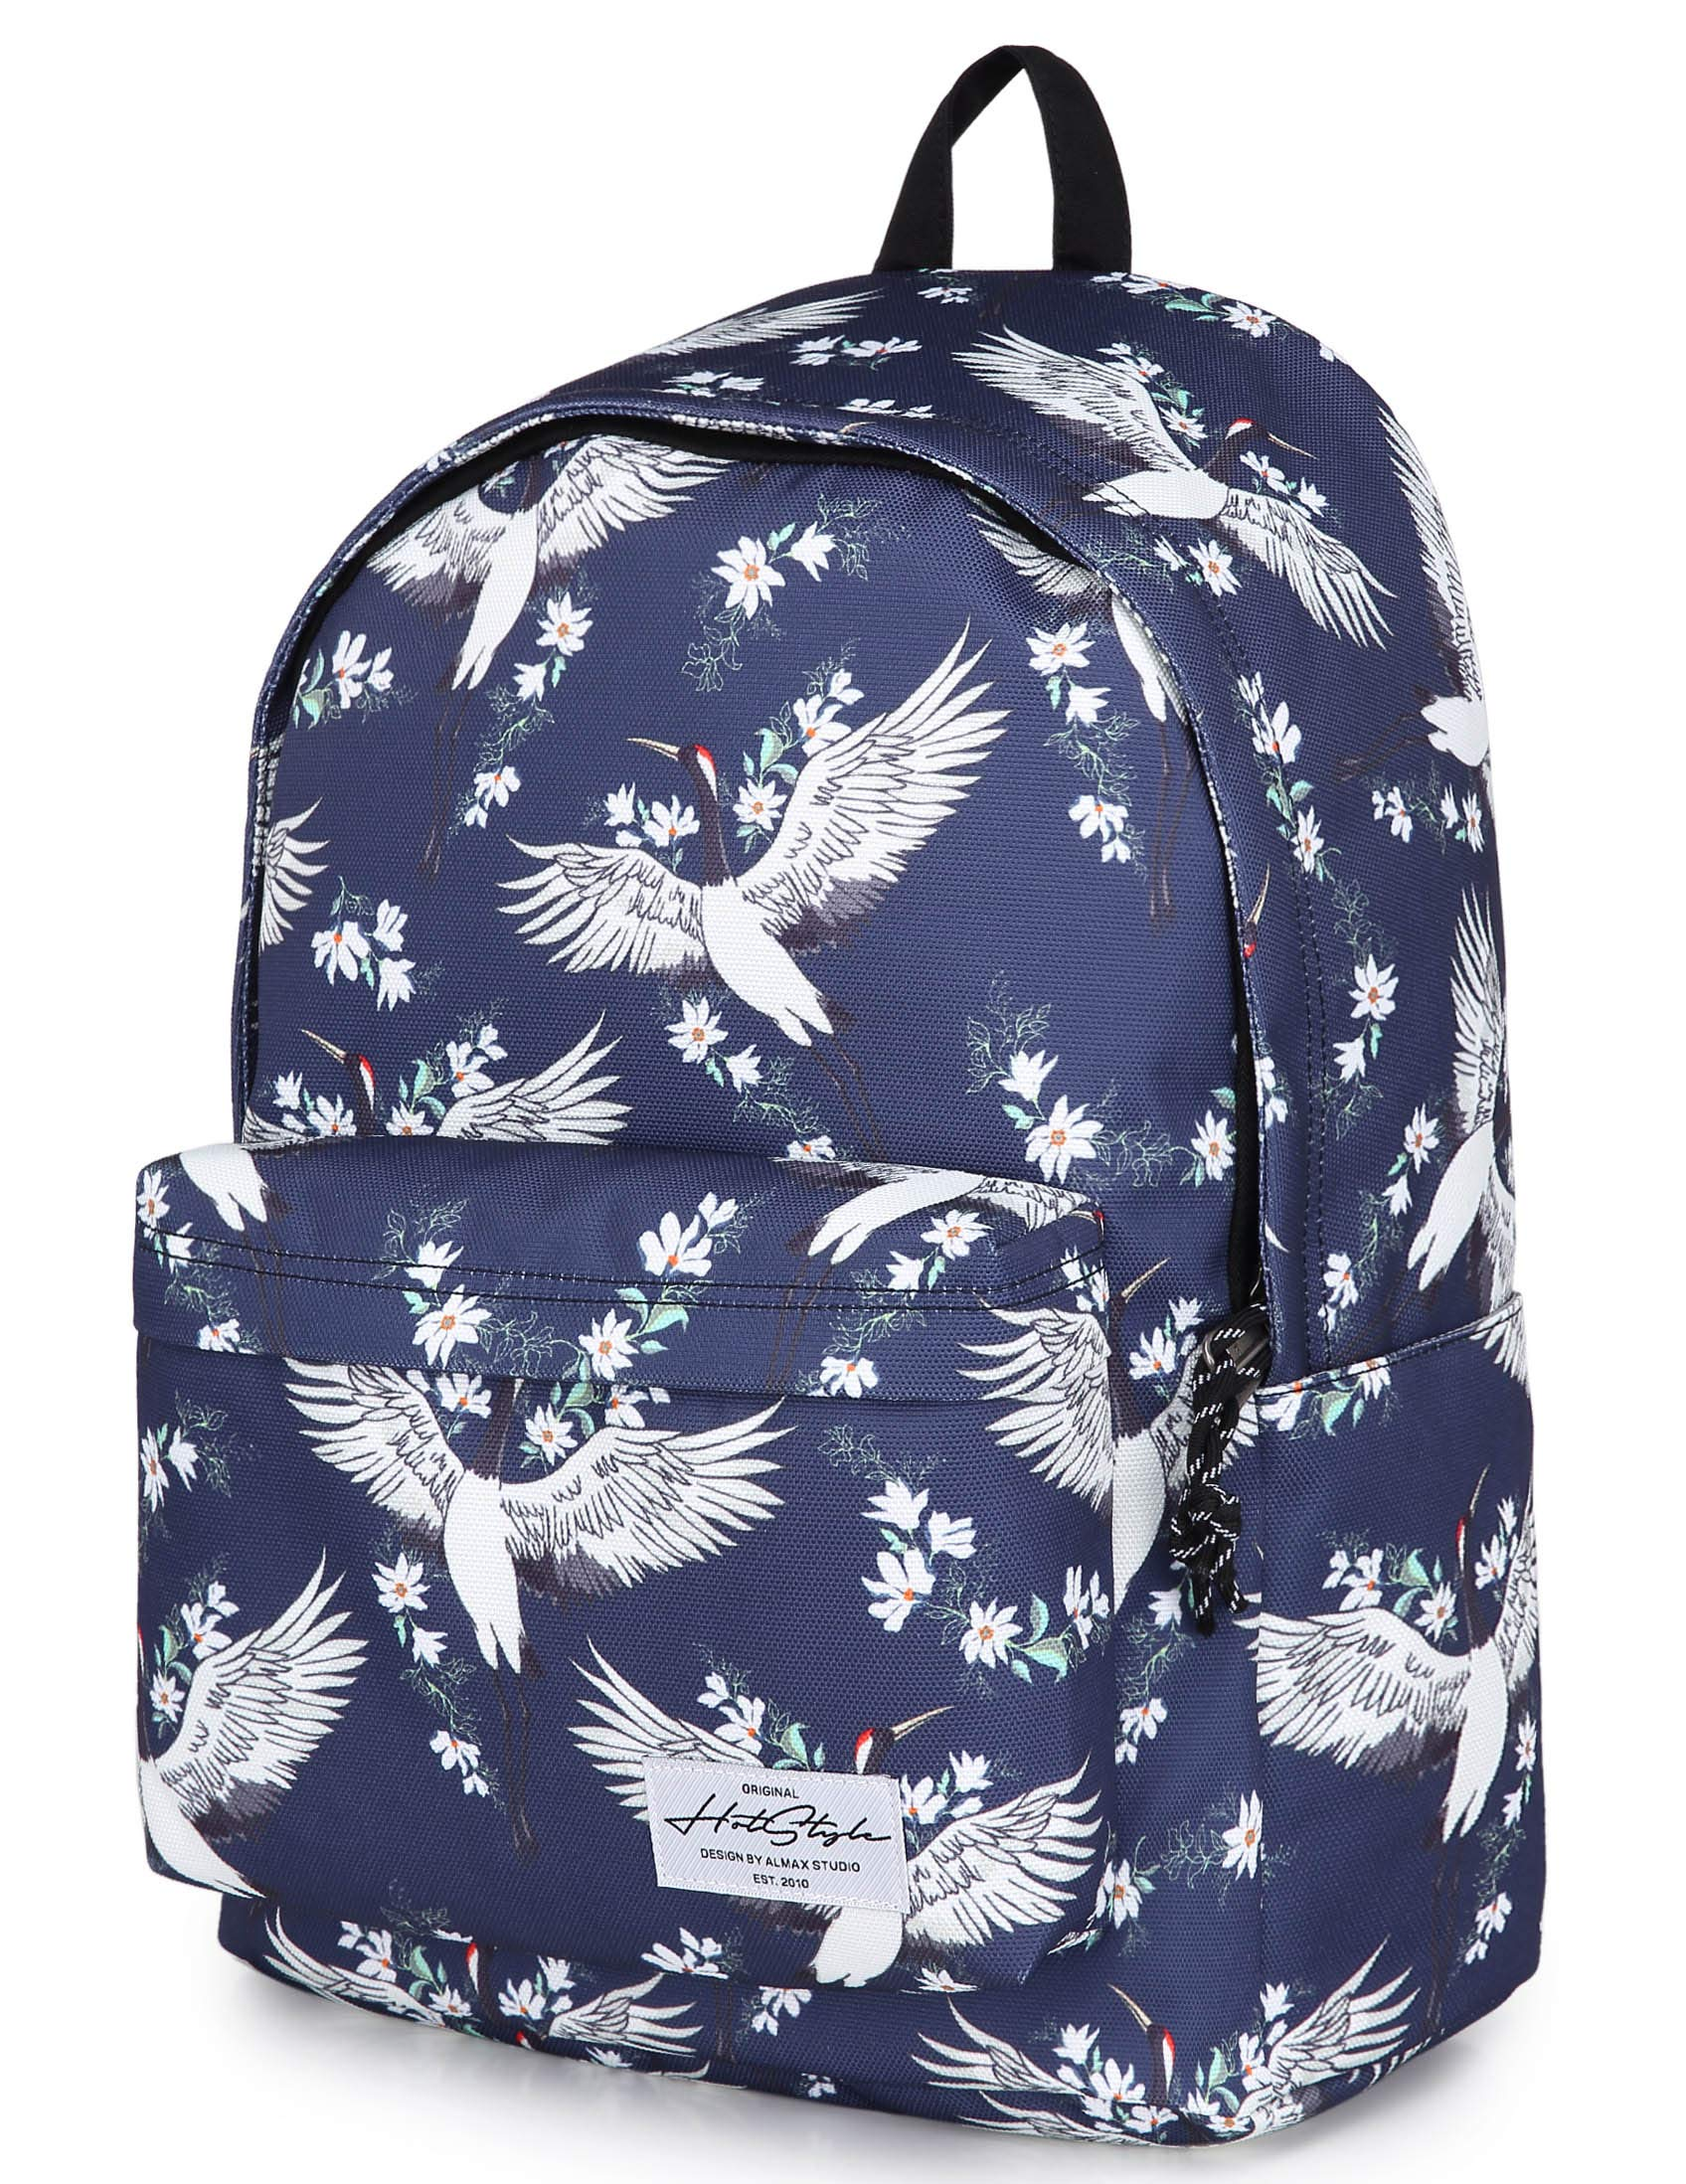 CANDER Classic School Backpack College Bookbag, fits 15-in Laptop, 16.9x13x6.7in